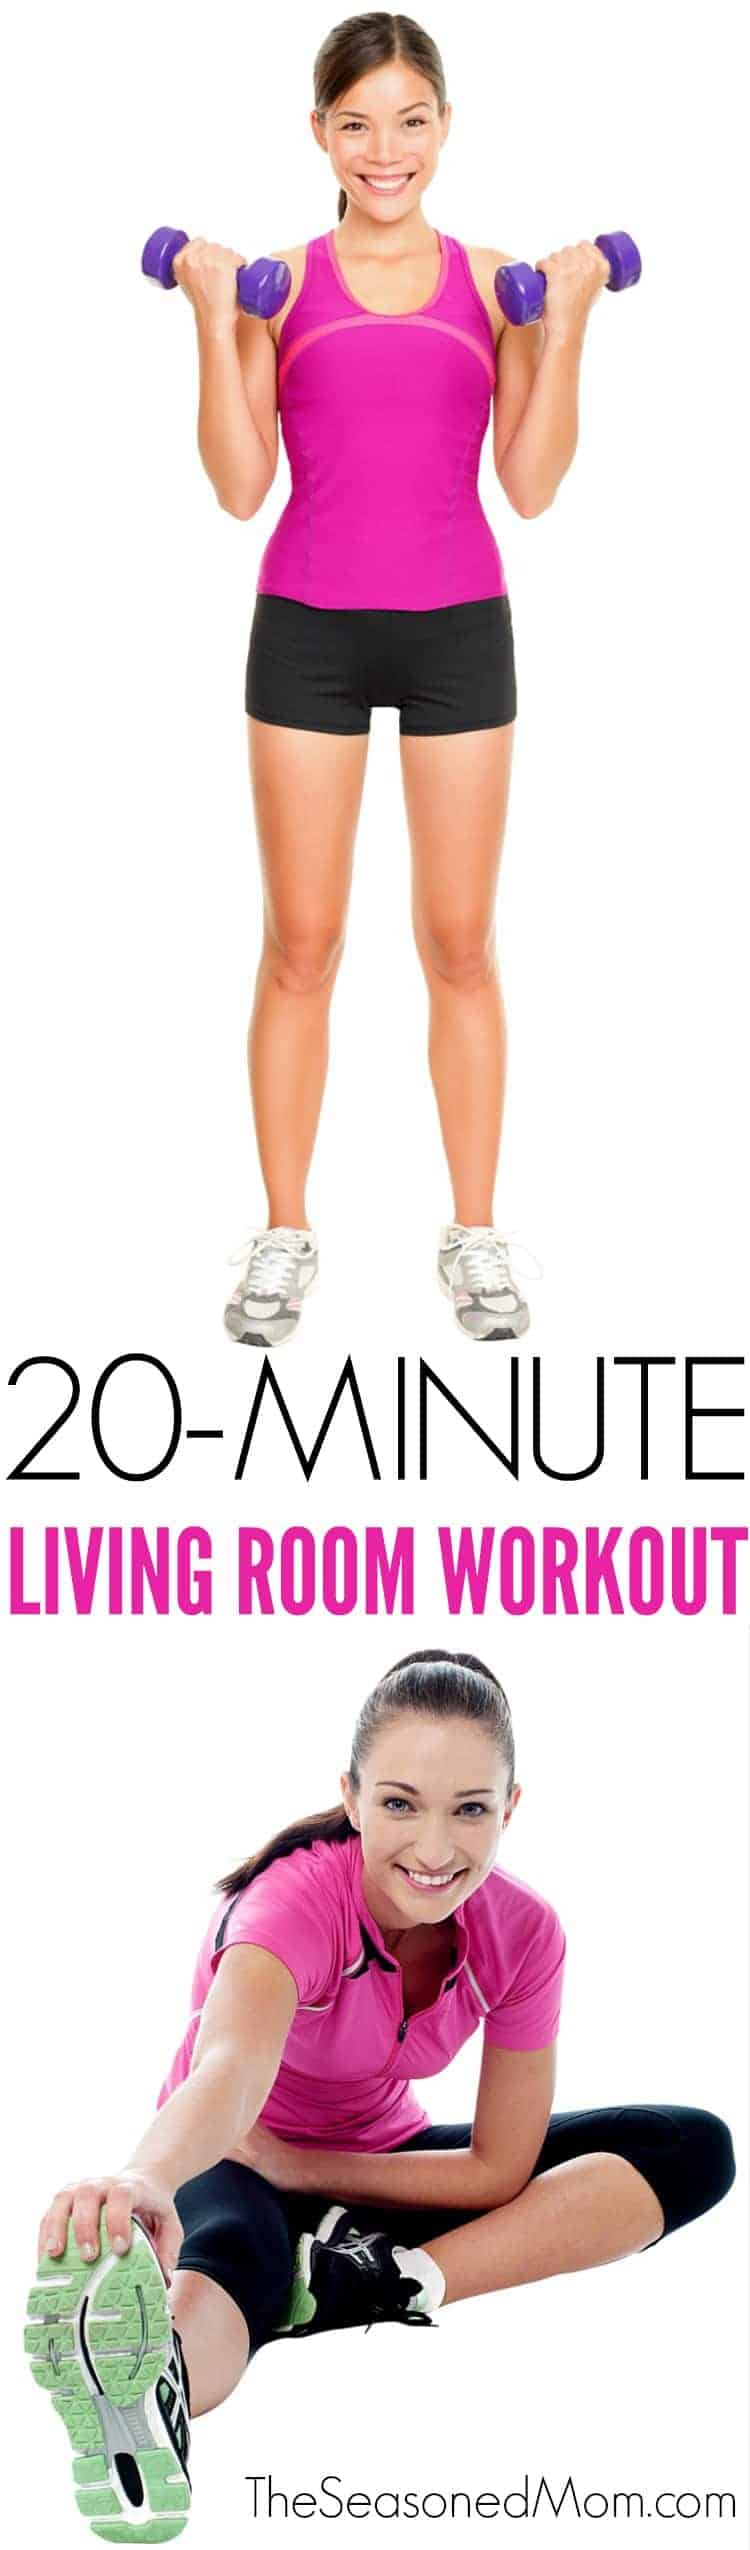 20 Minute Living Room Workout - The Seasoned Mom